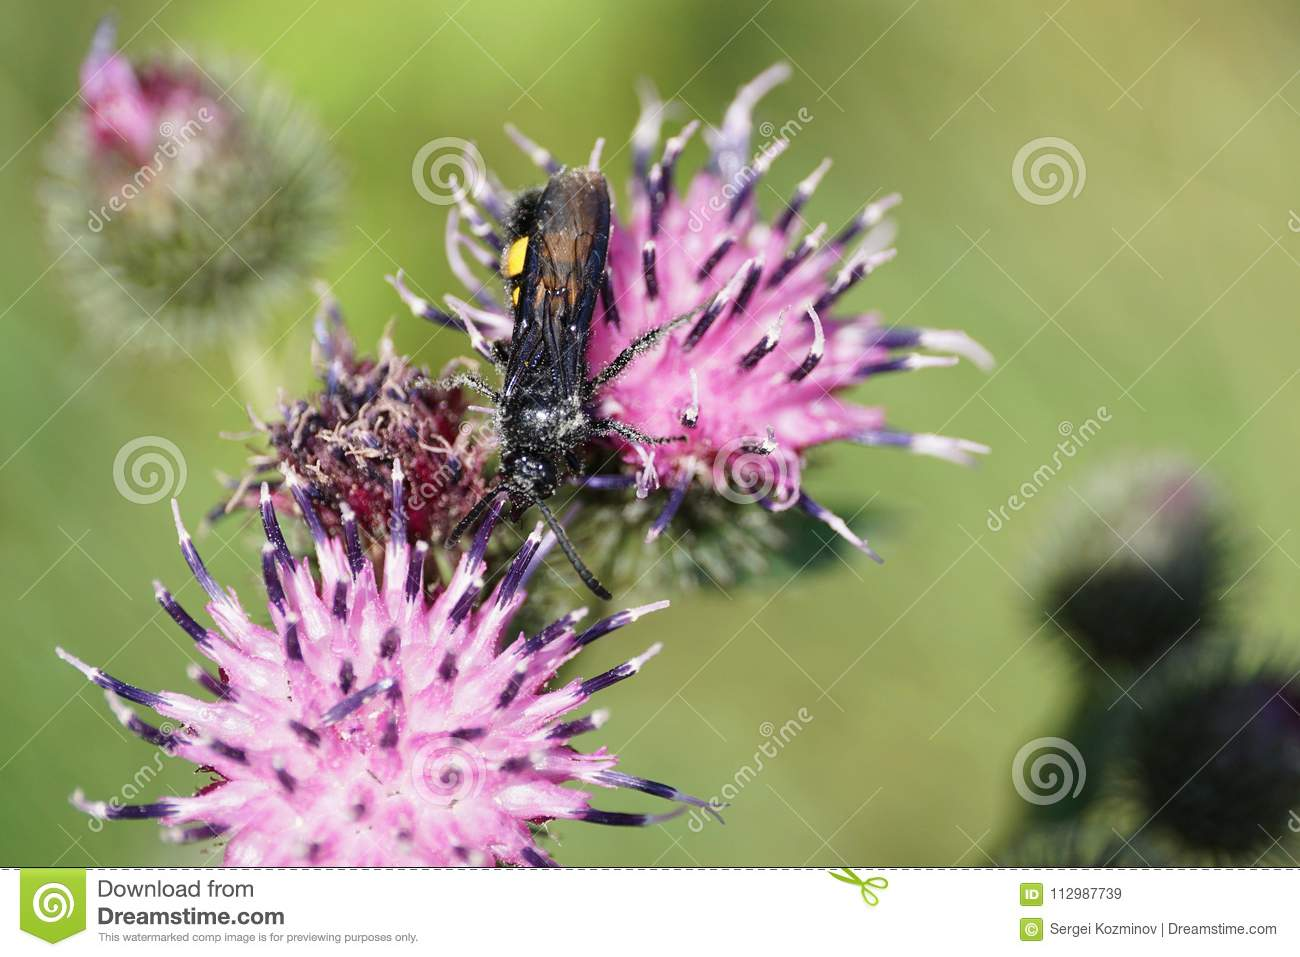 Close-up of a hanging Caucasian wasp Scolia hirta on a flower th